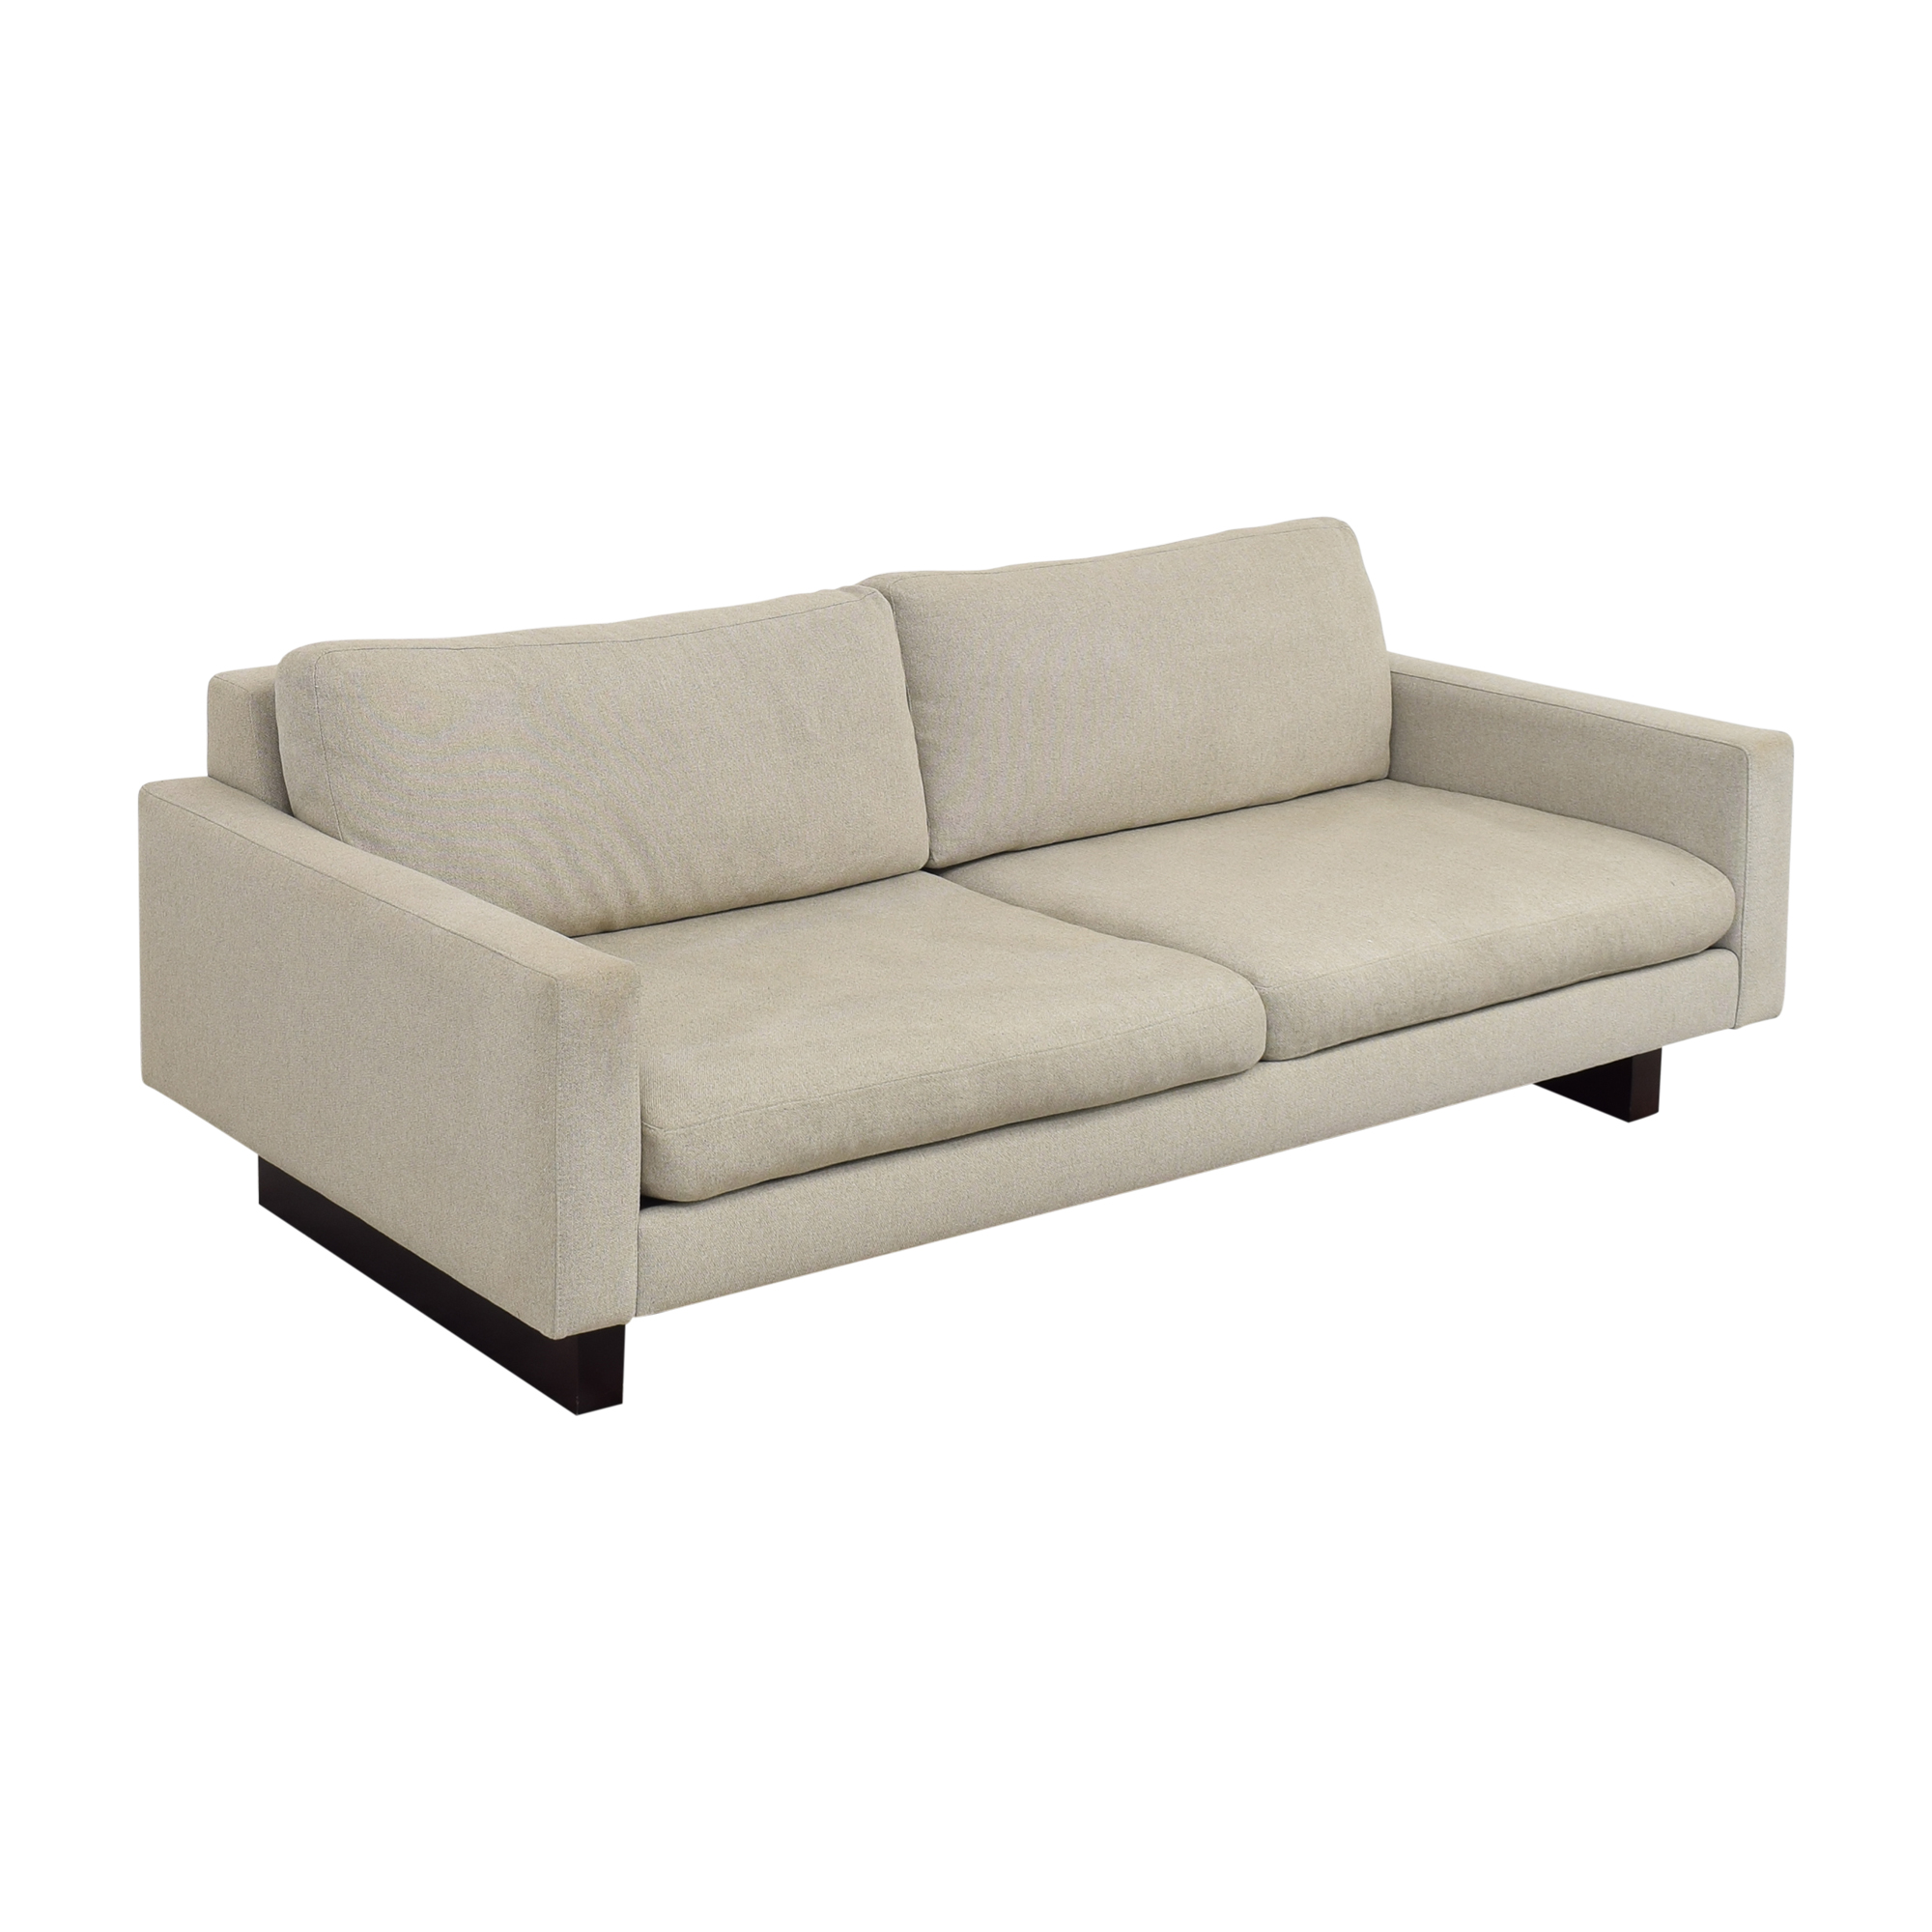 Room & Board Hess Sofa sale